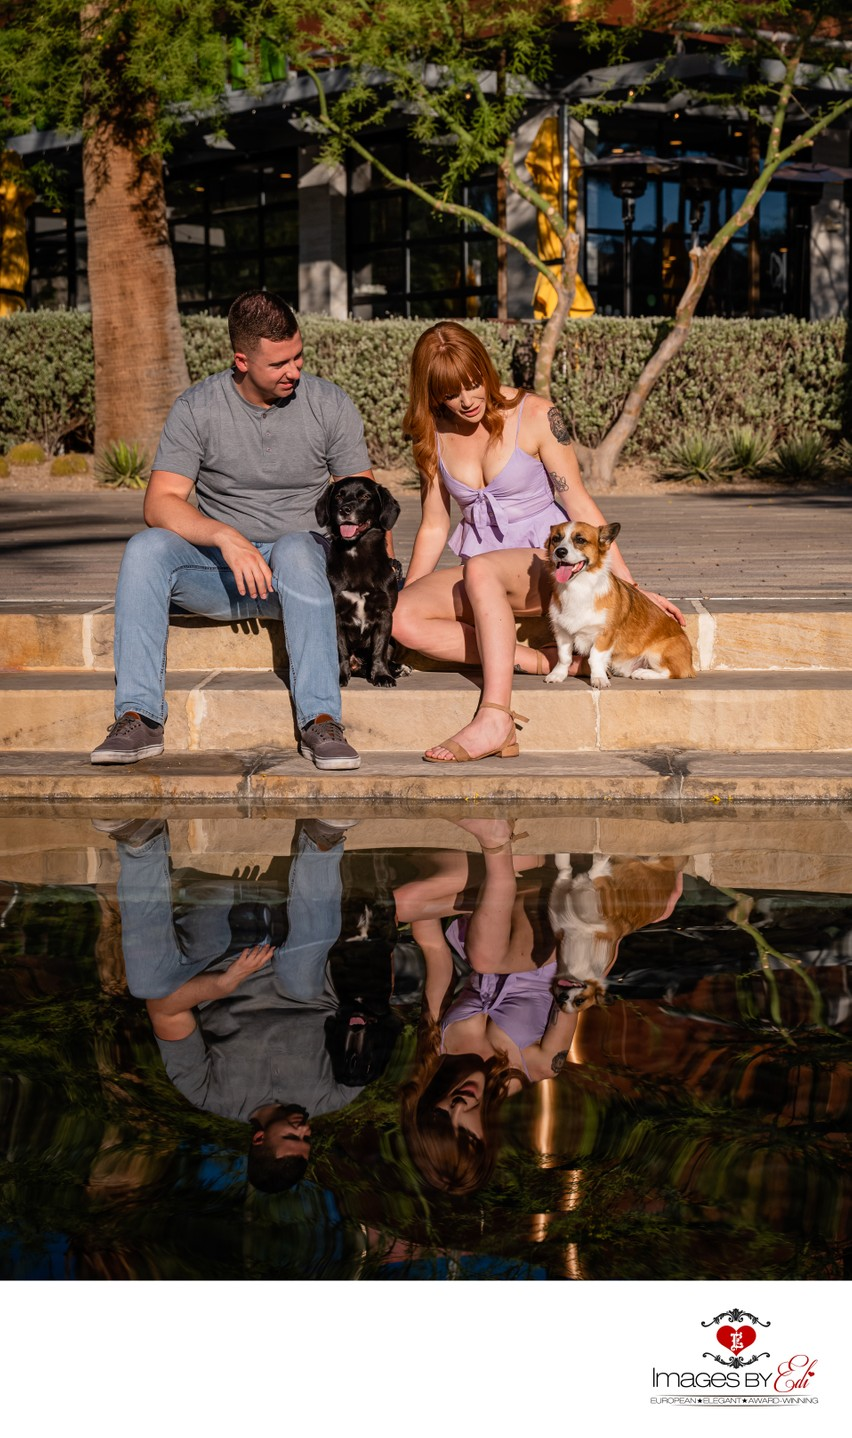 Las Vegas Pet Photographer | Corgis on Las Vegas Pet Photo | Pet Photography with Family  in Summerlin | Images By EDI